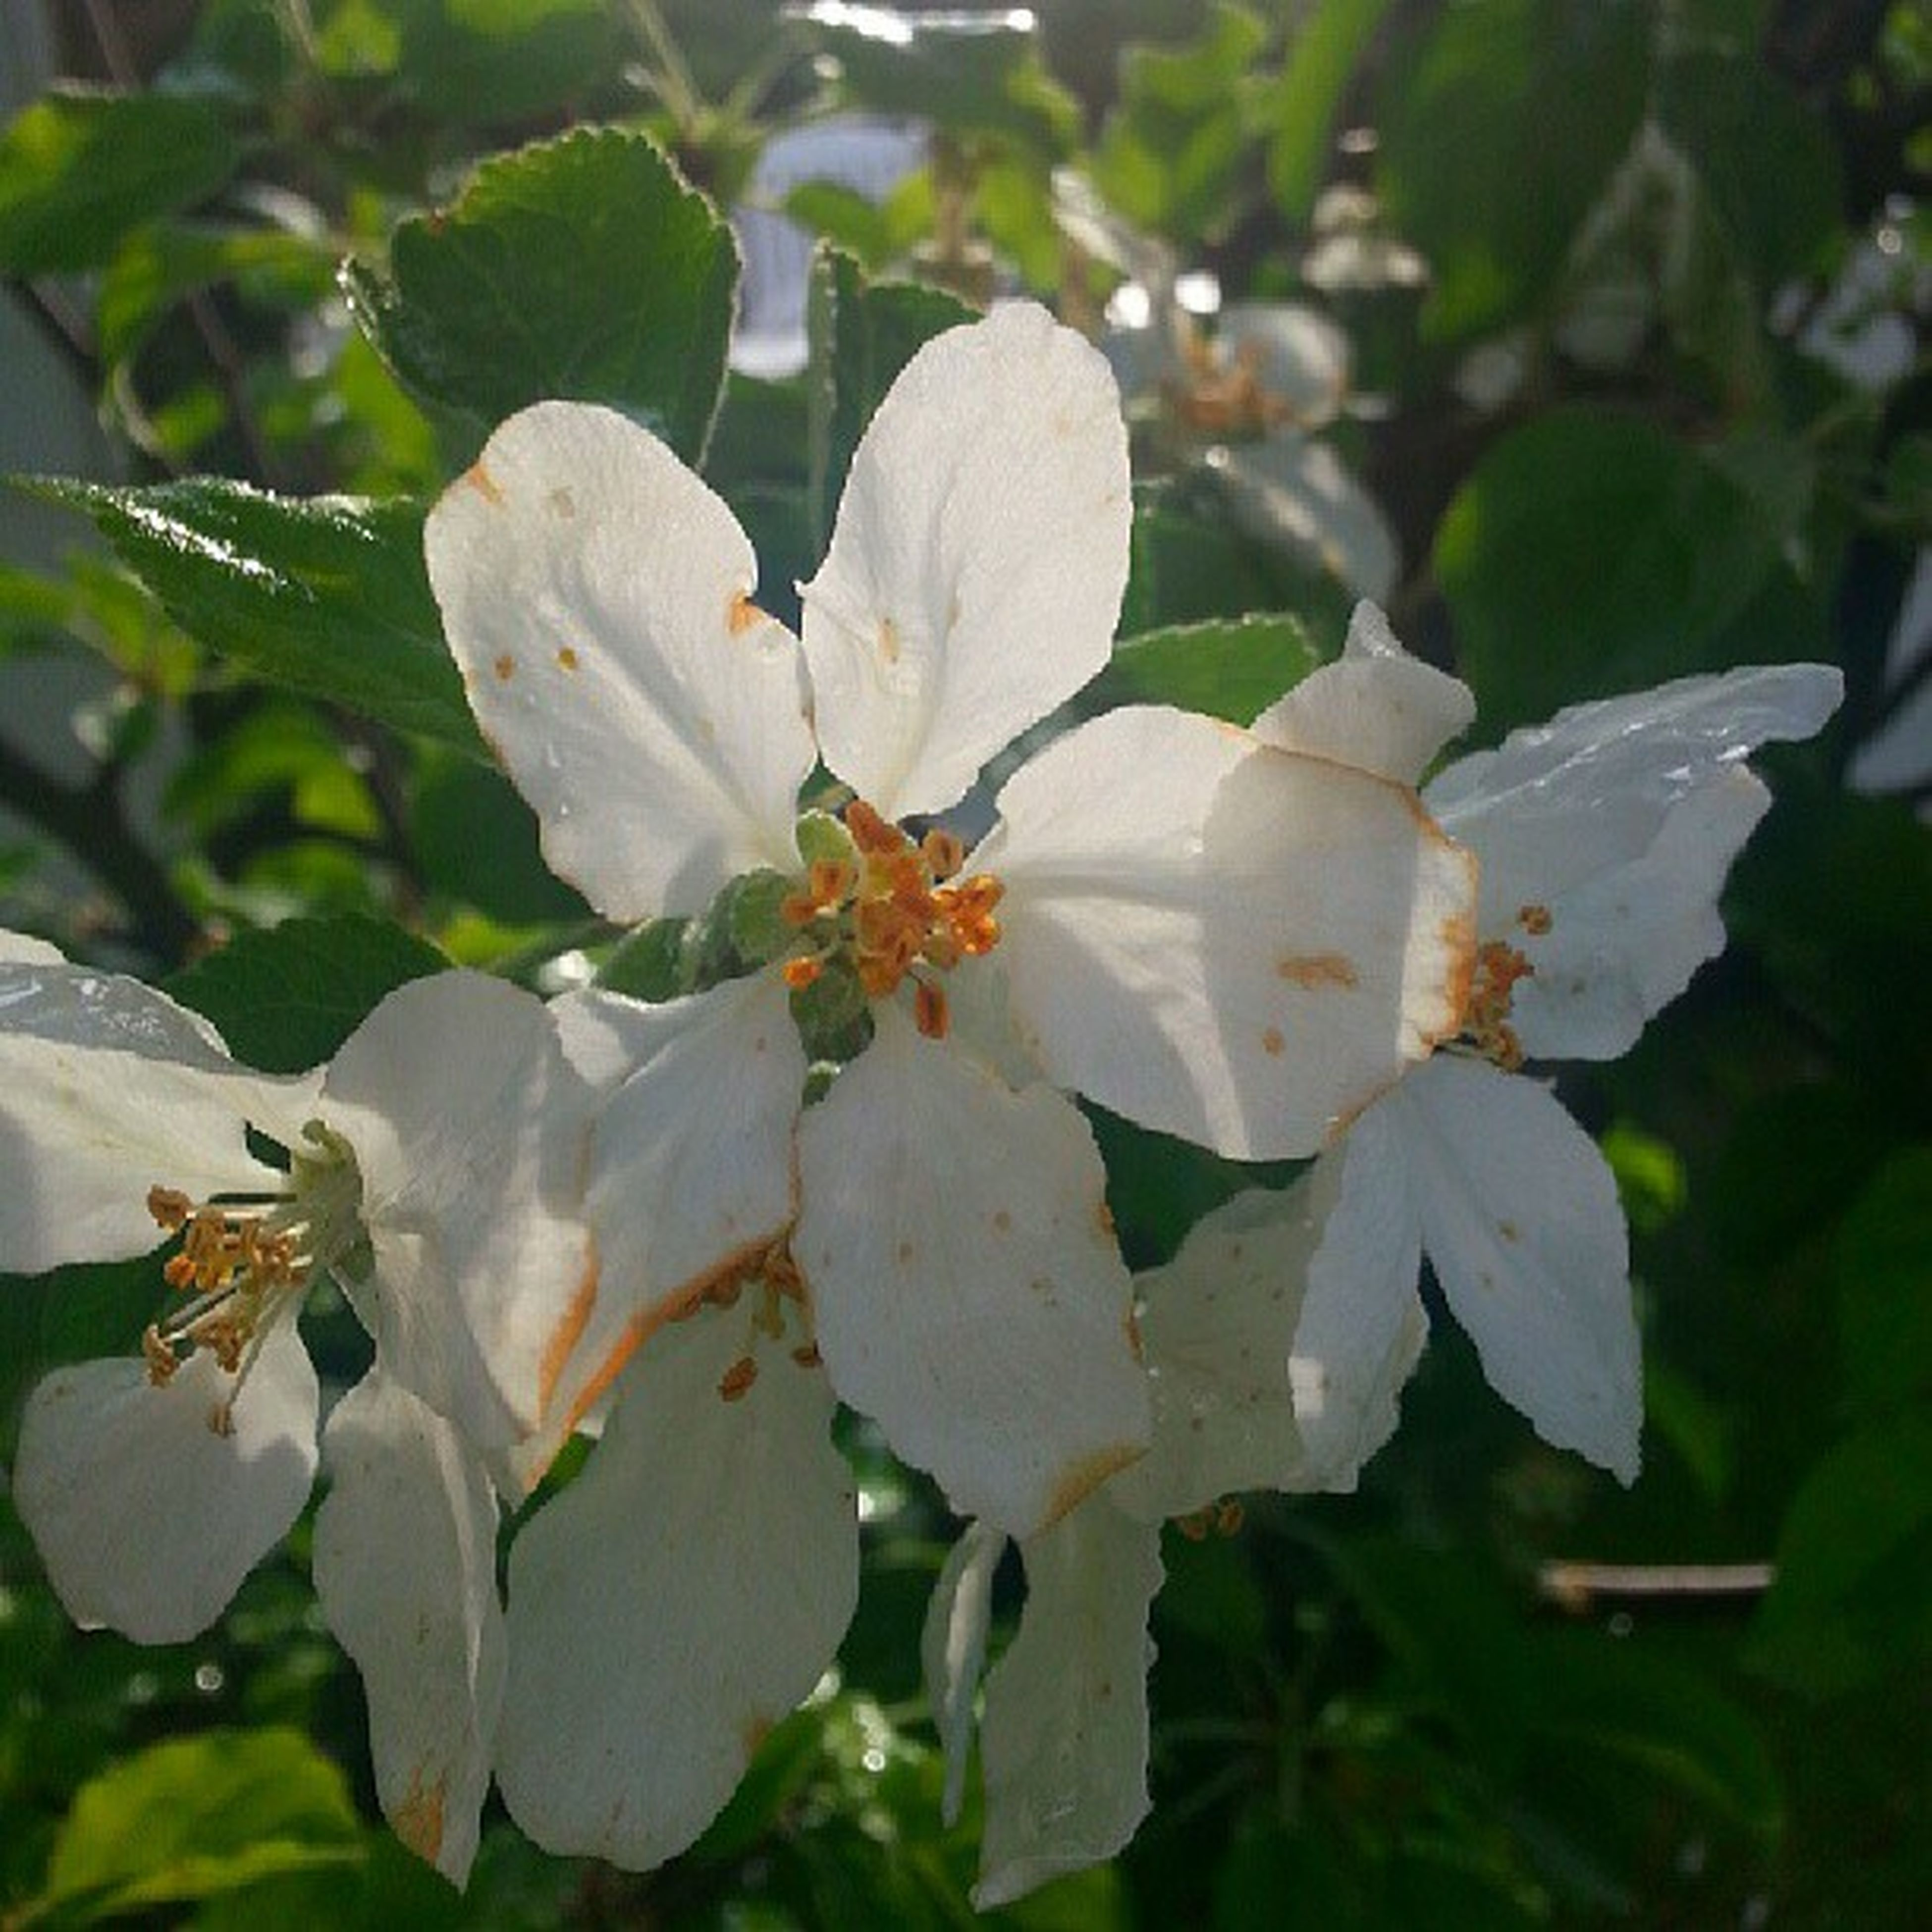 flower, growth, freshness, petal, fragility, leaf, beauty in nature, flower head, close-up, nature, white color, focus on foreground, plant, blooming, in bloom, park - man made space, day, outdoors, pollen, stamen